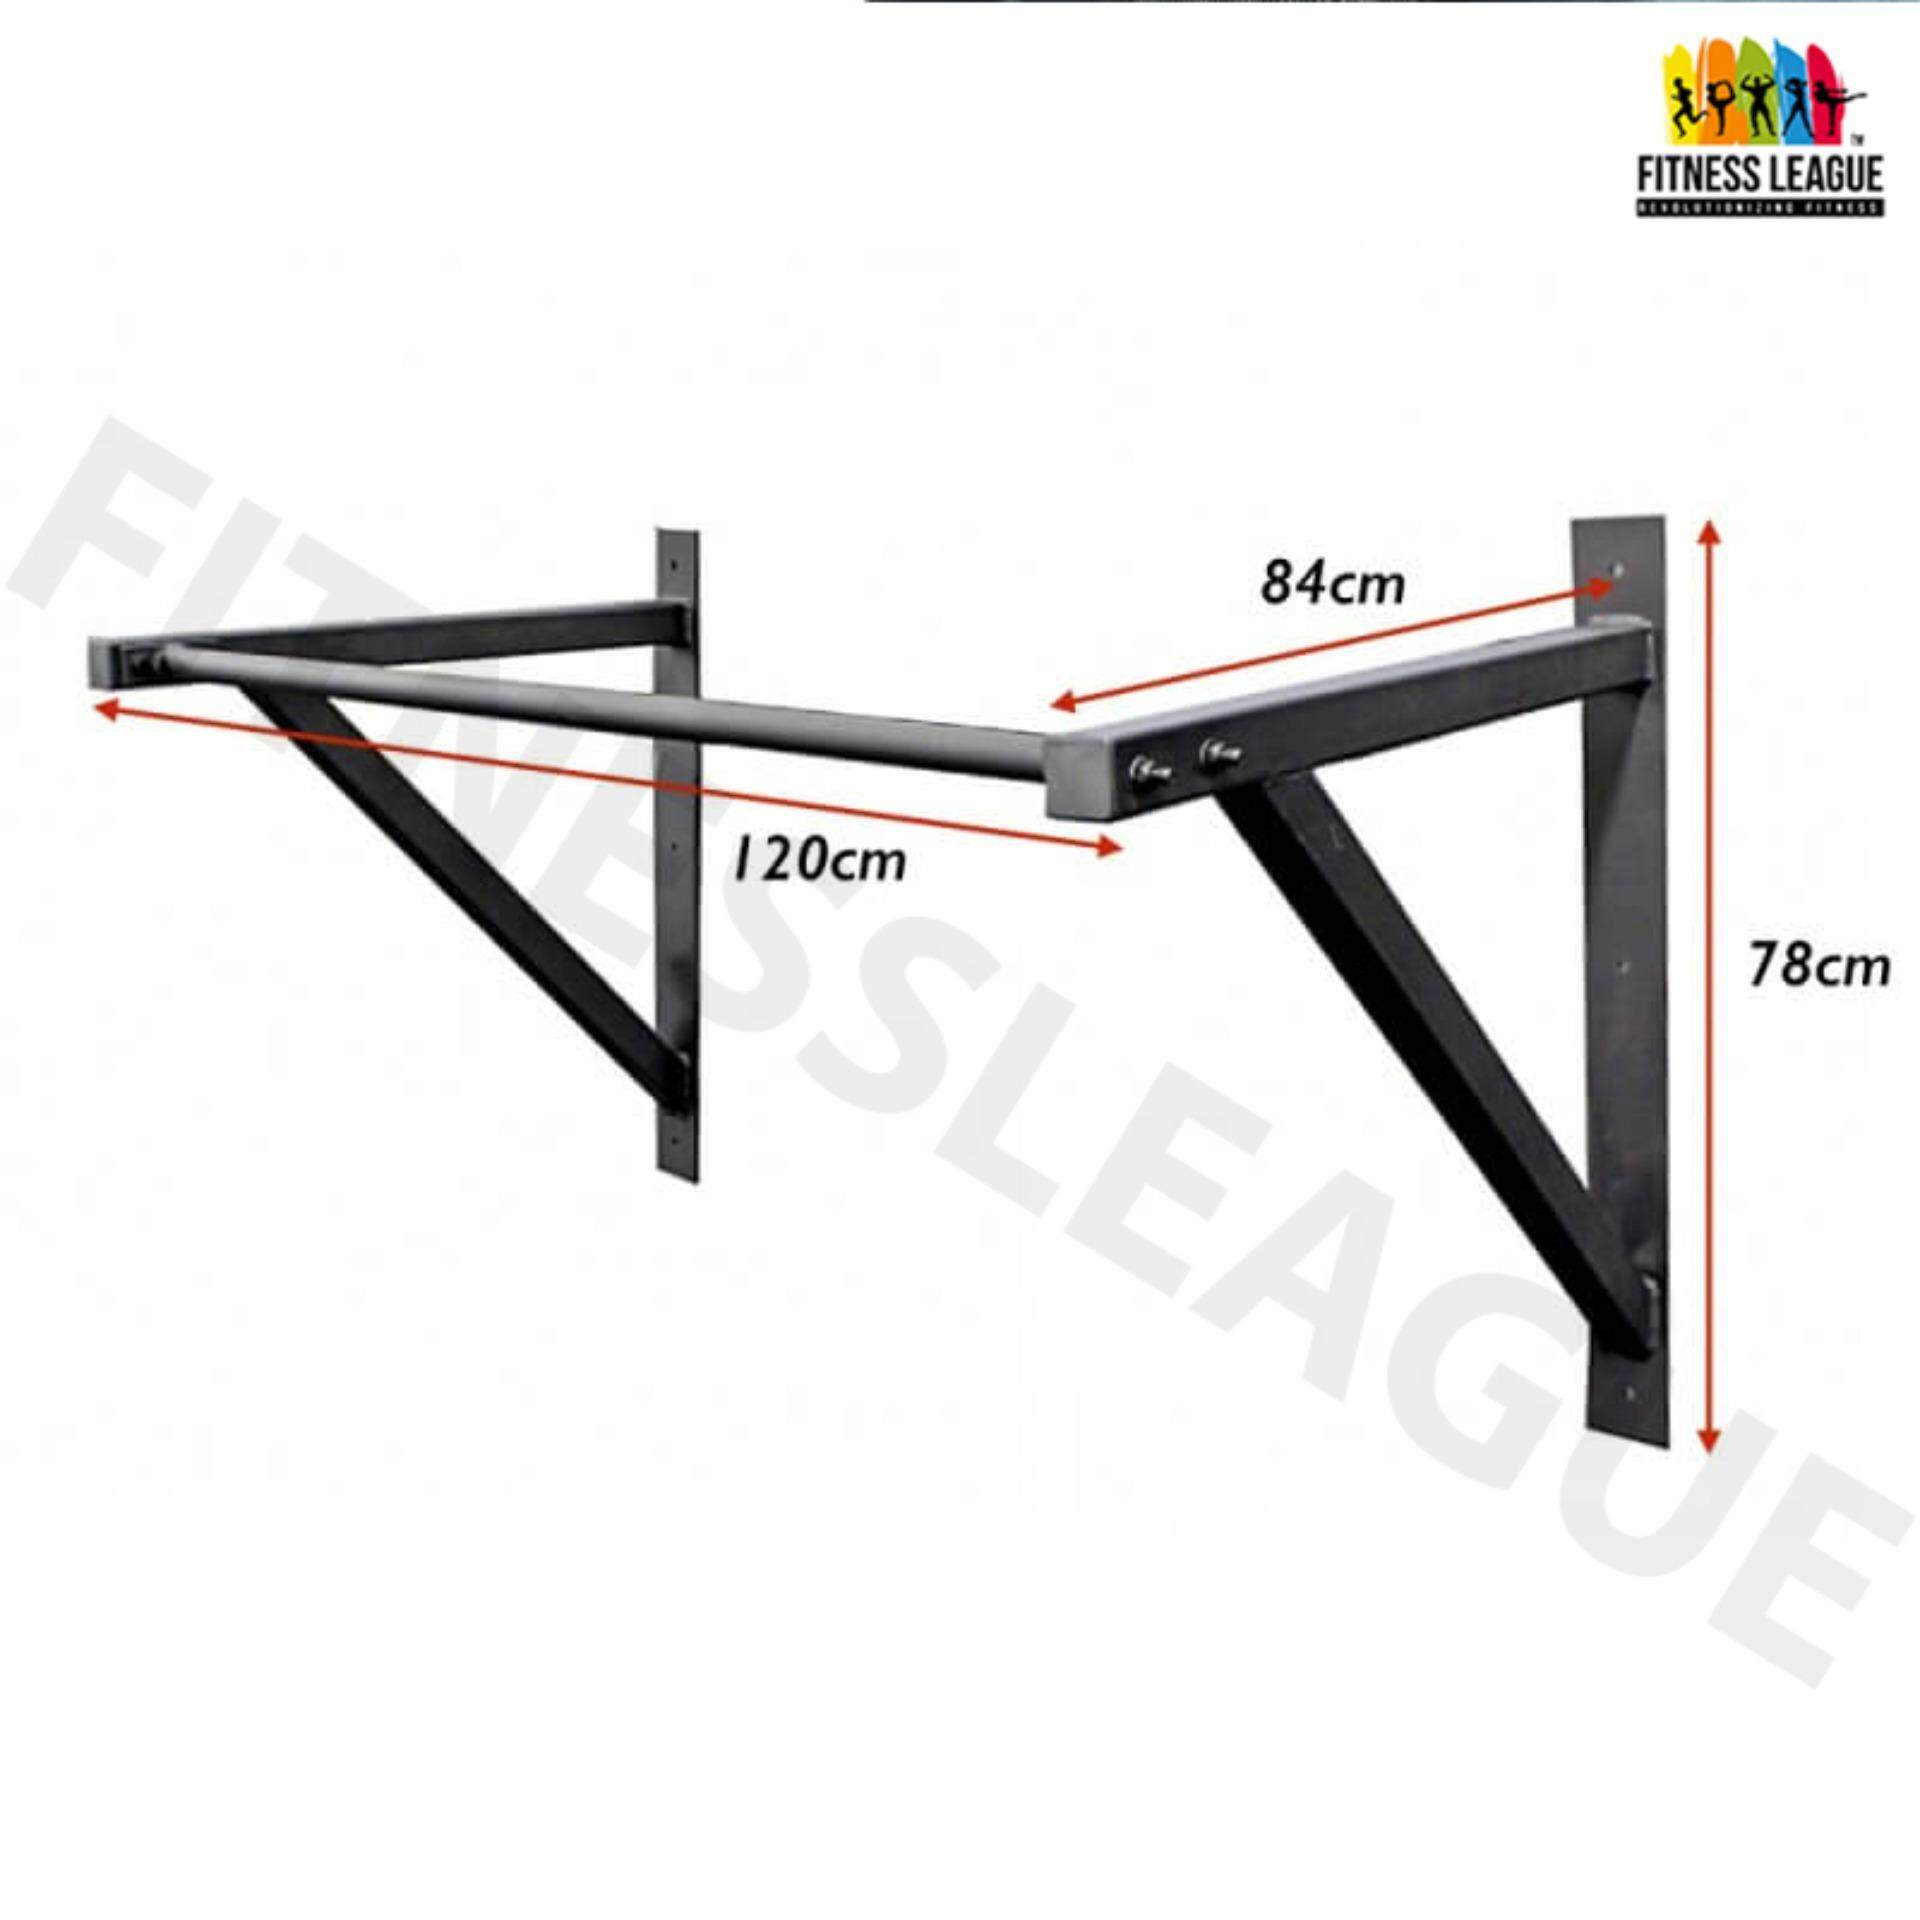 Pull-Up & Push-Up Bars - Buy Pull-Up & Push-Up Bars at Best Price in